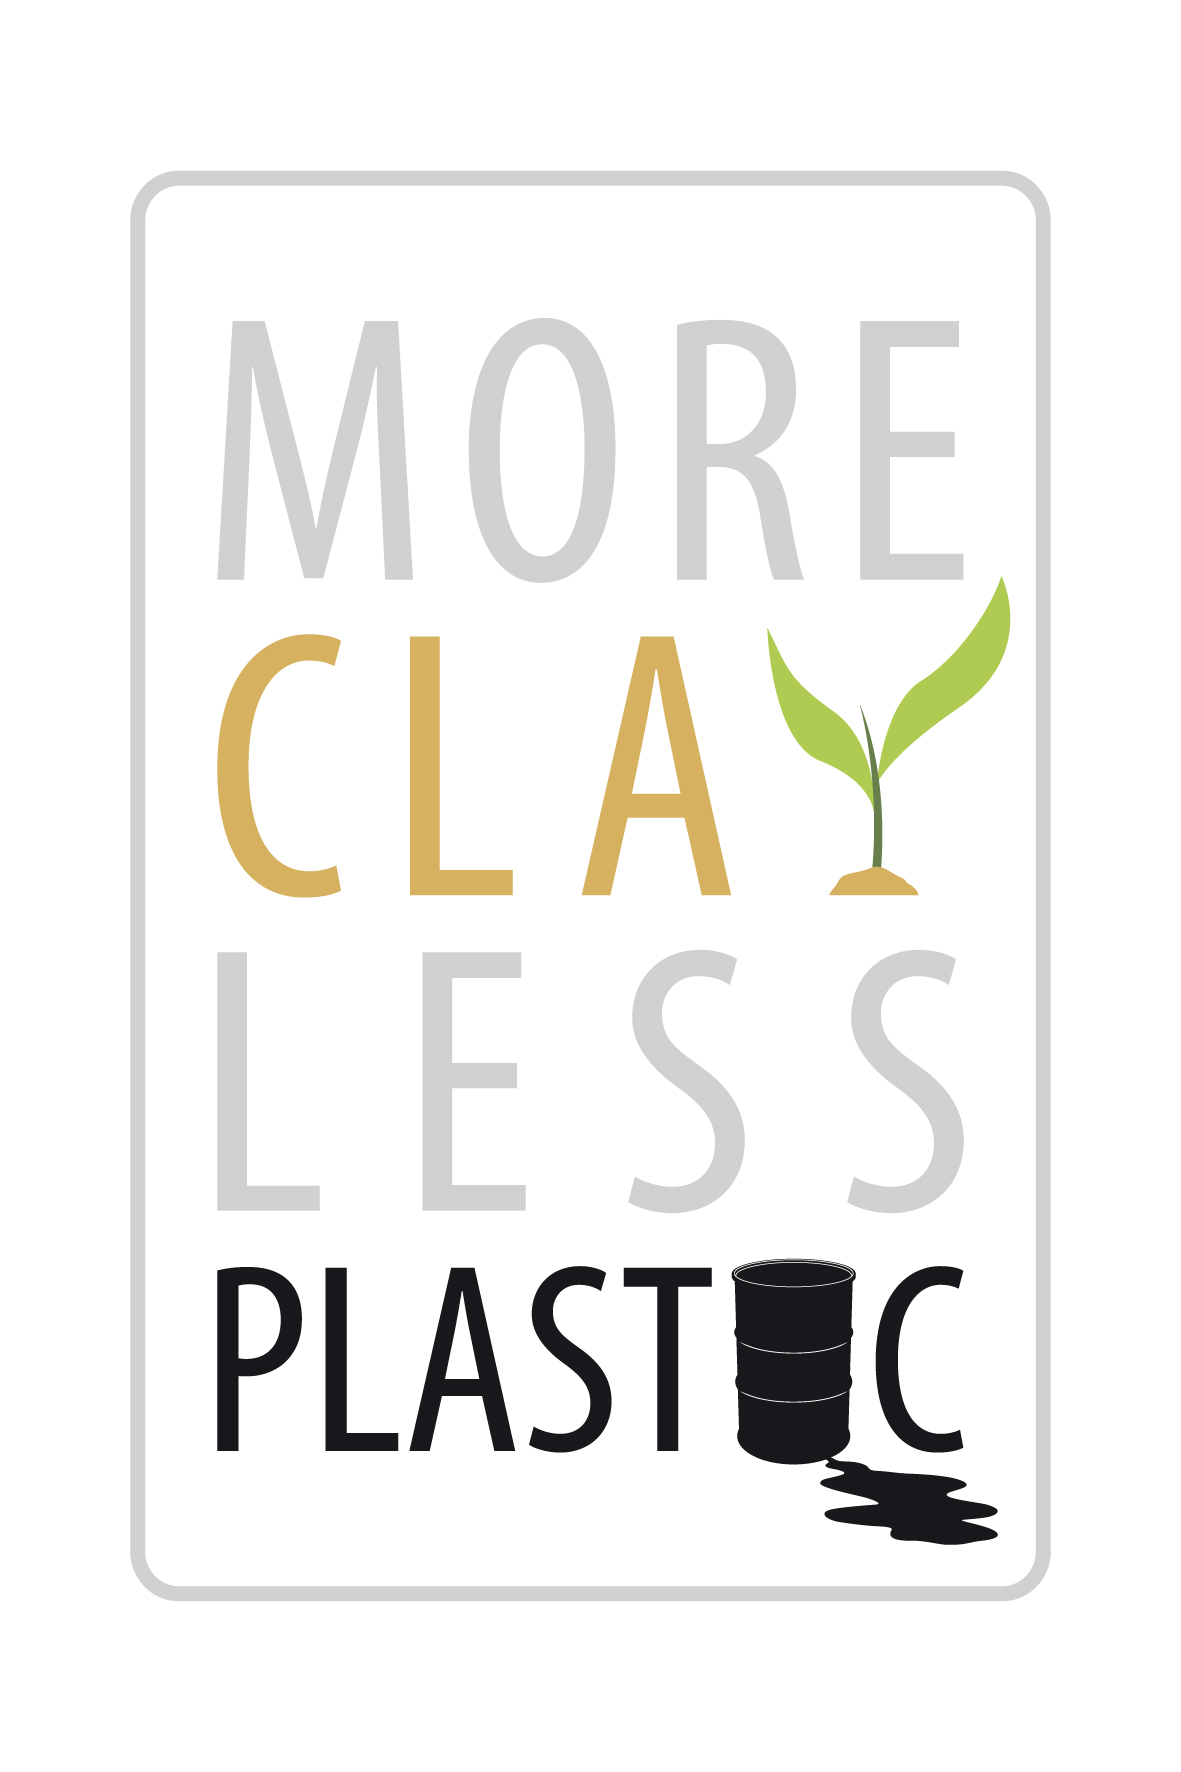 More Clay Less Plastic